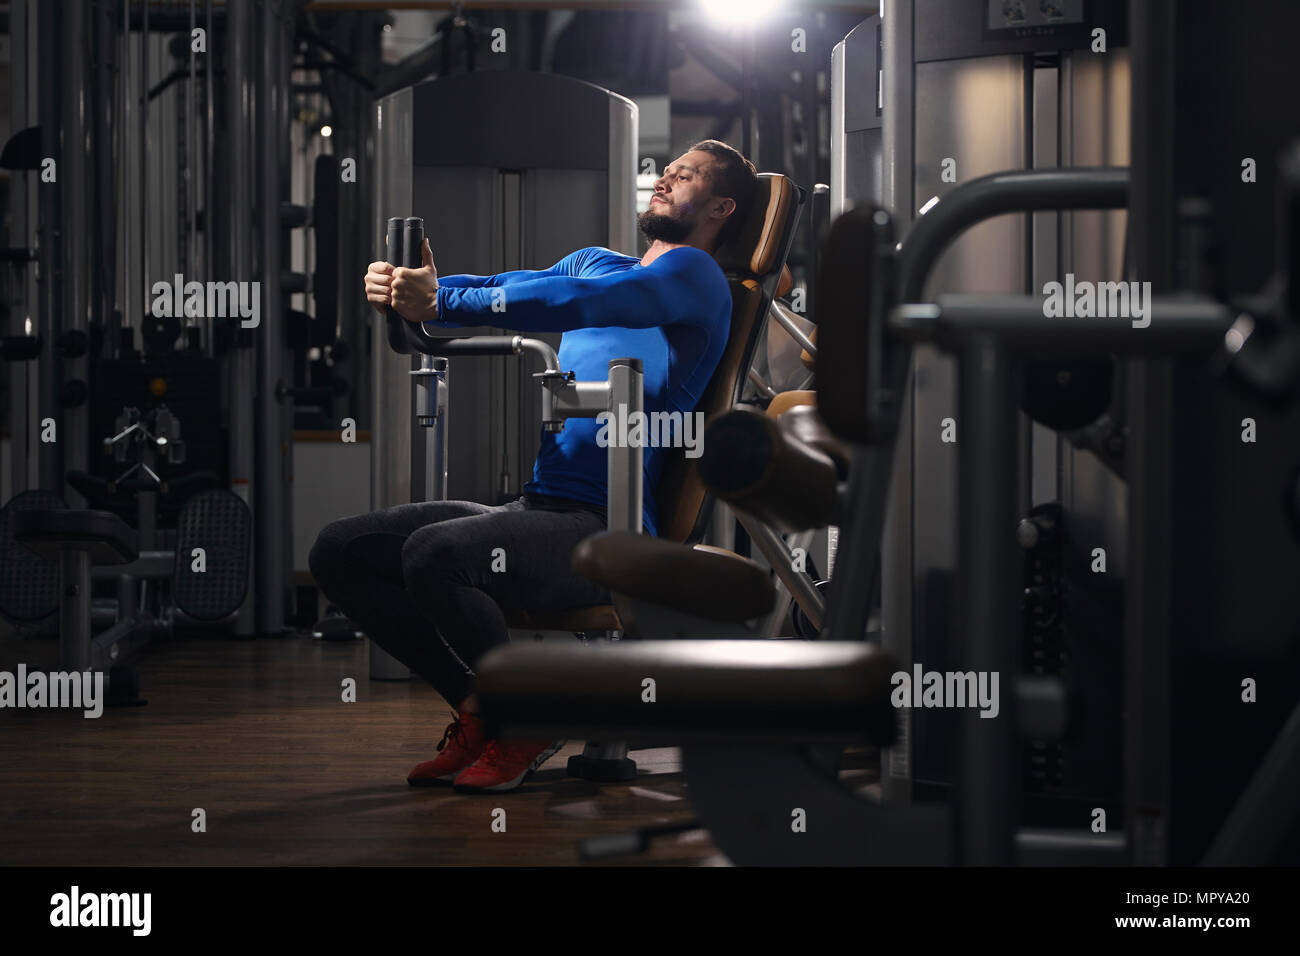 Man stretching on exercise machine at gym - Stock Image